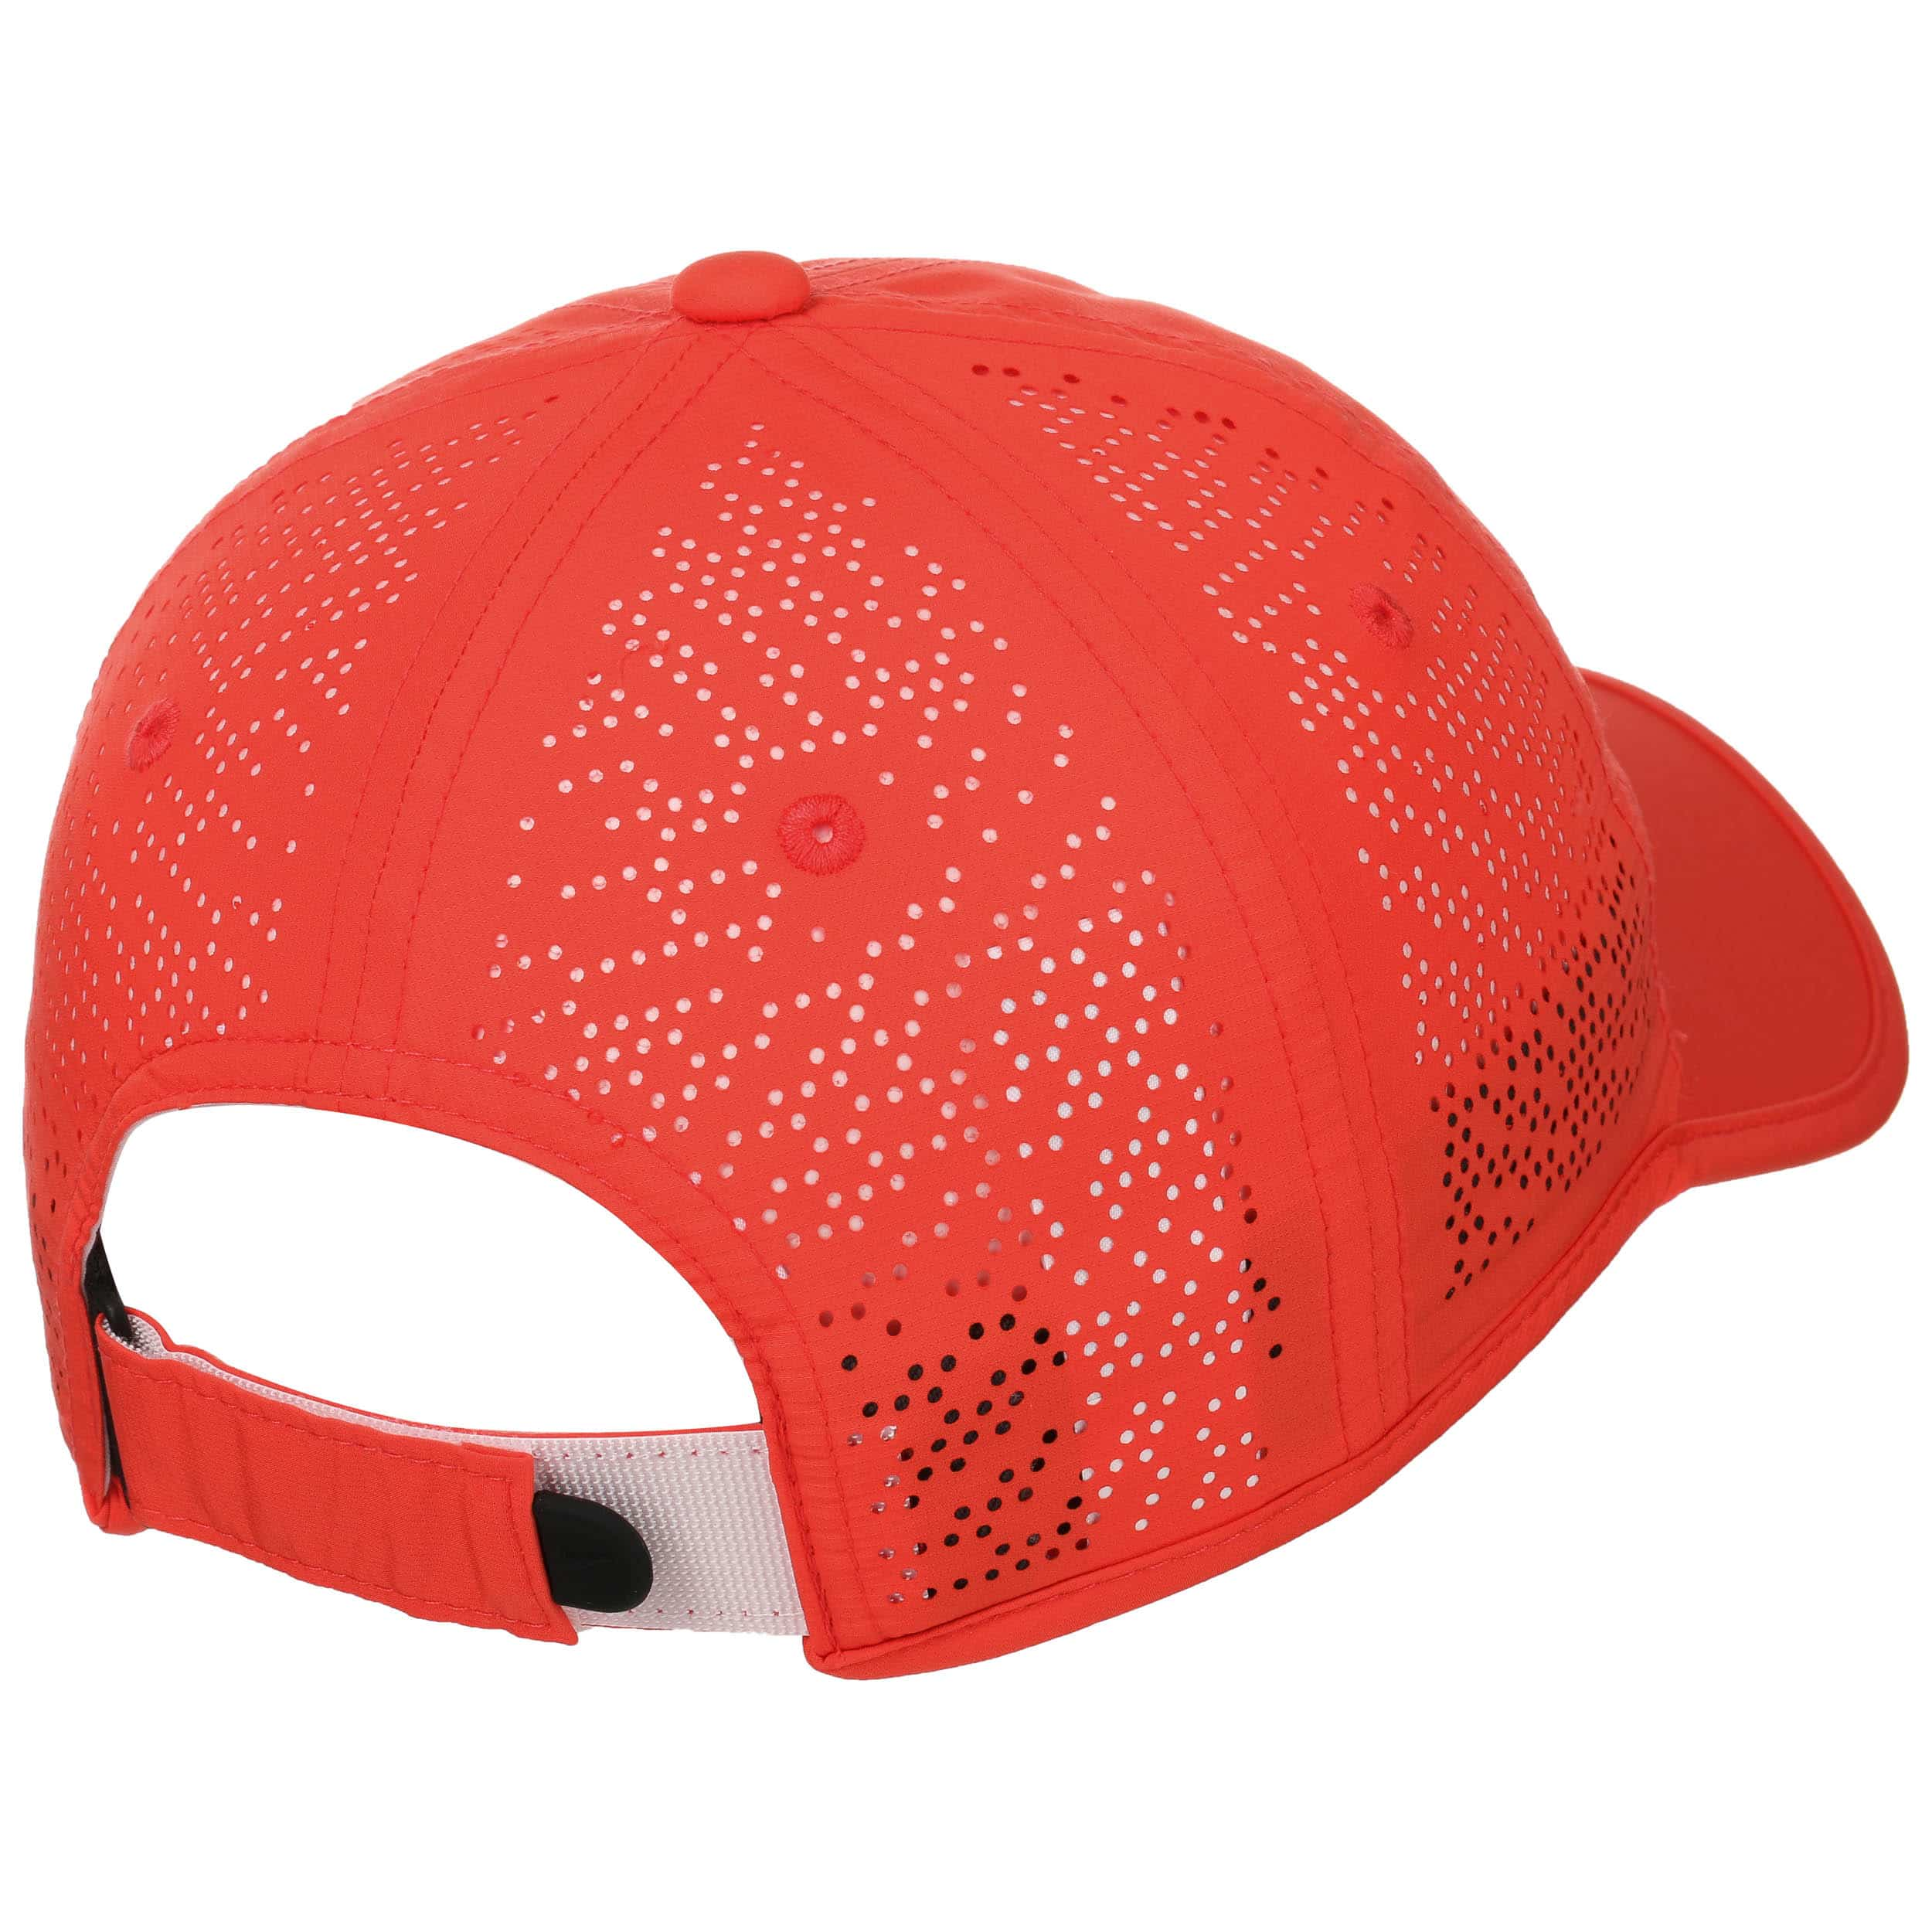 d954c6015d7 ... Swoosh Perforation Cap by Nike - black 2 ...